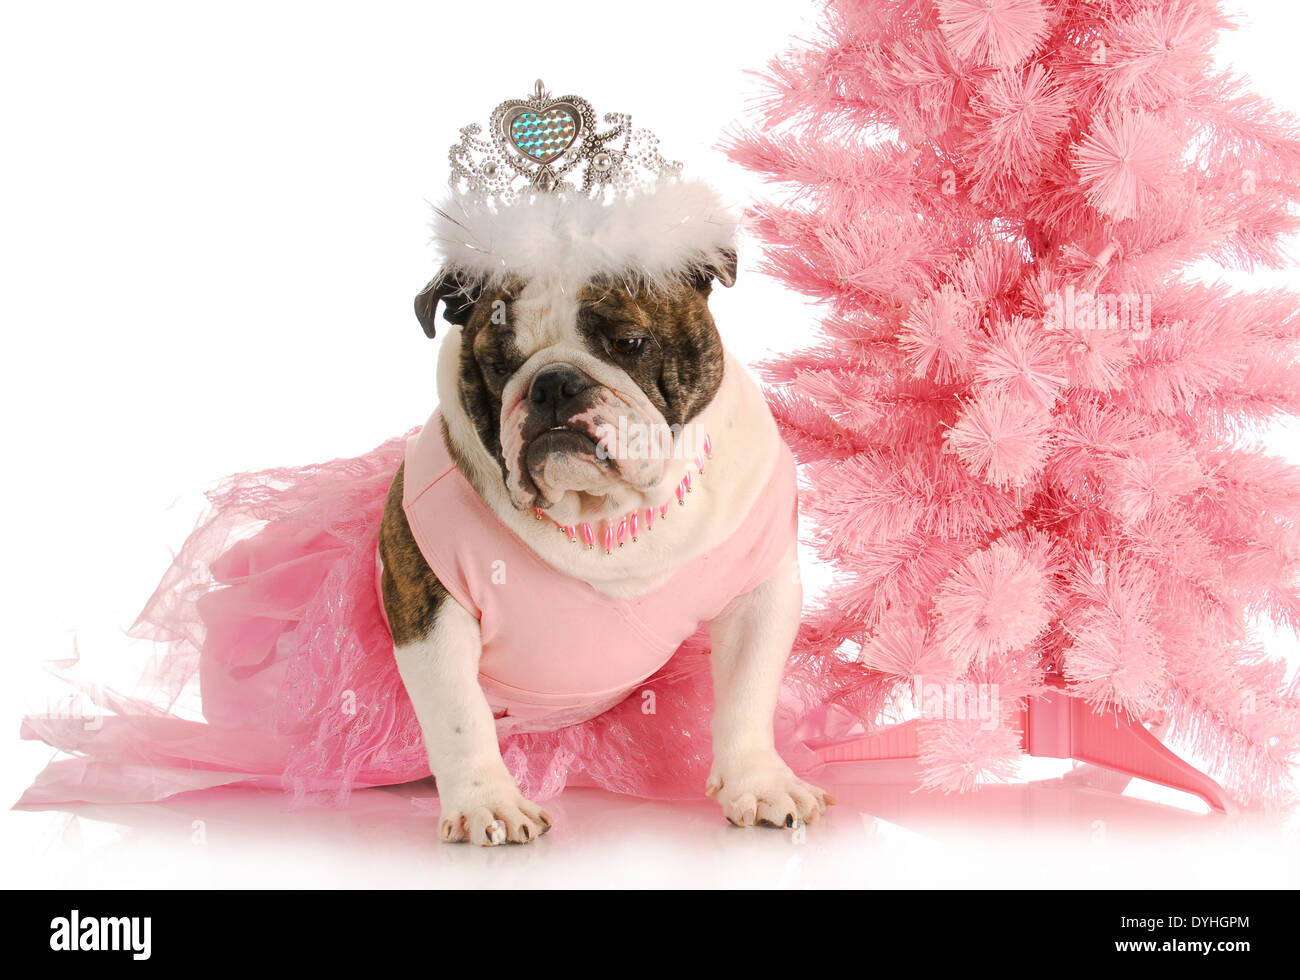 spoiled dog - english bulldog dressed like a princess in pink with tiara on white background - Stock Image